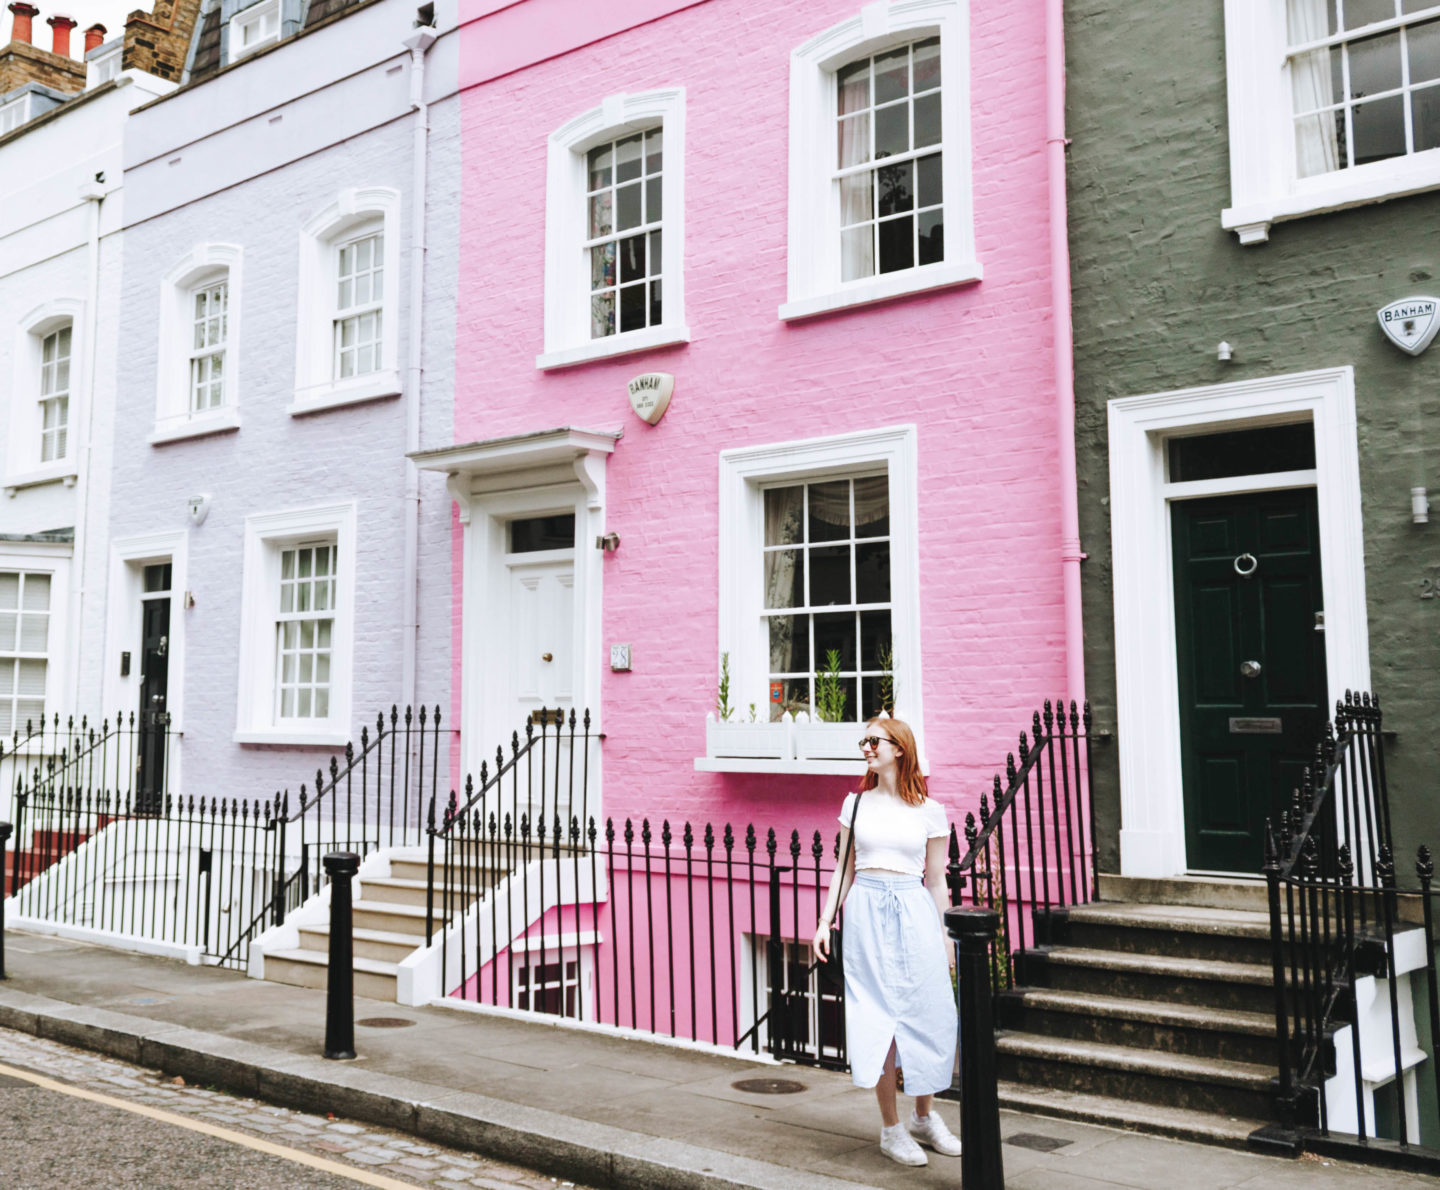 8 Colourful London Streets To Brighten Your Day